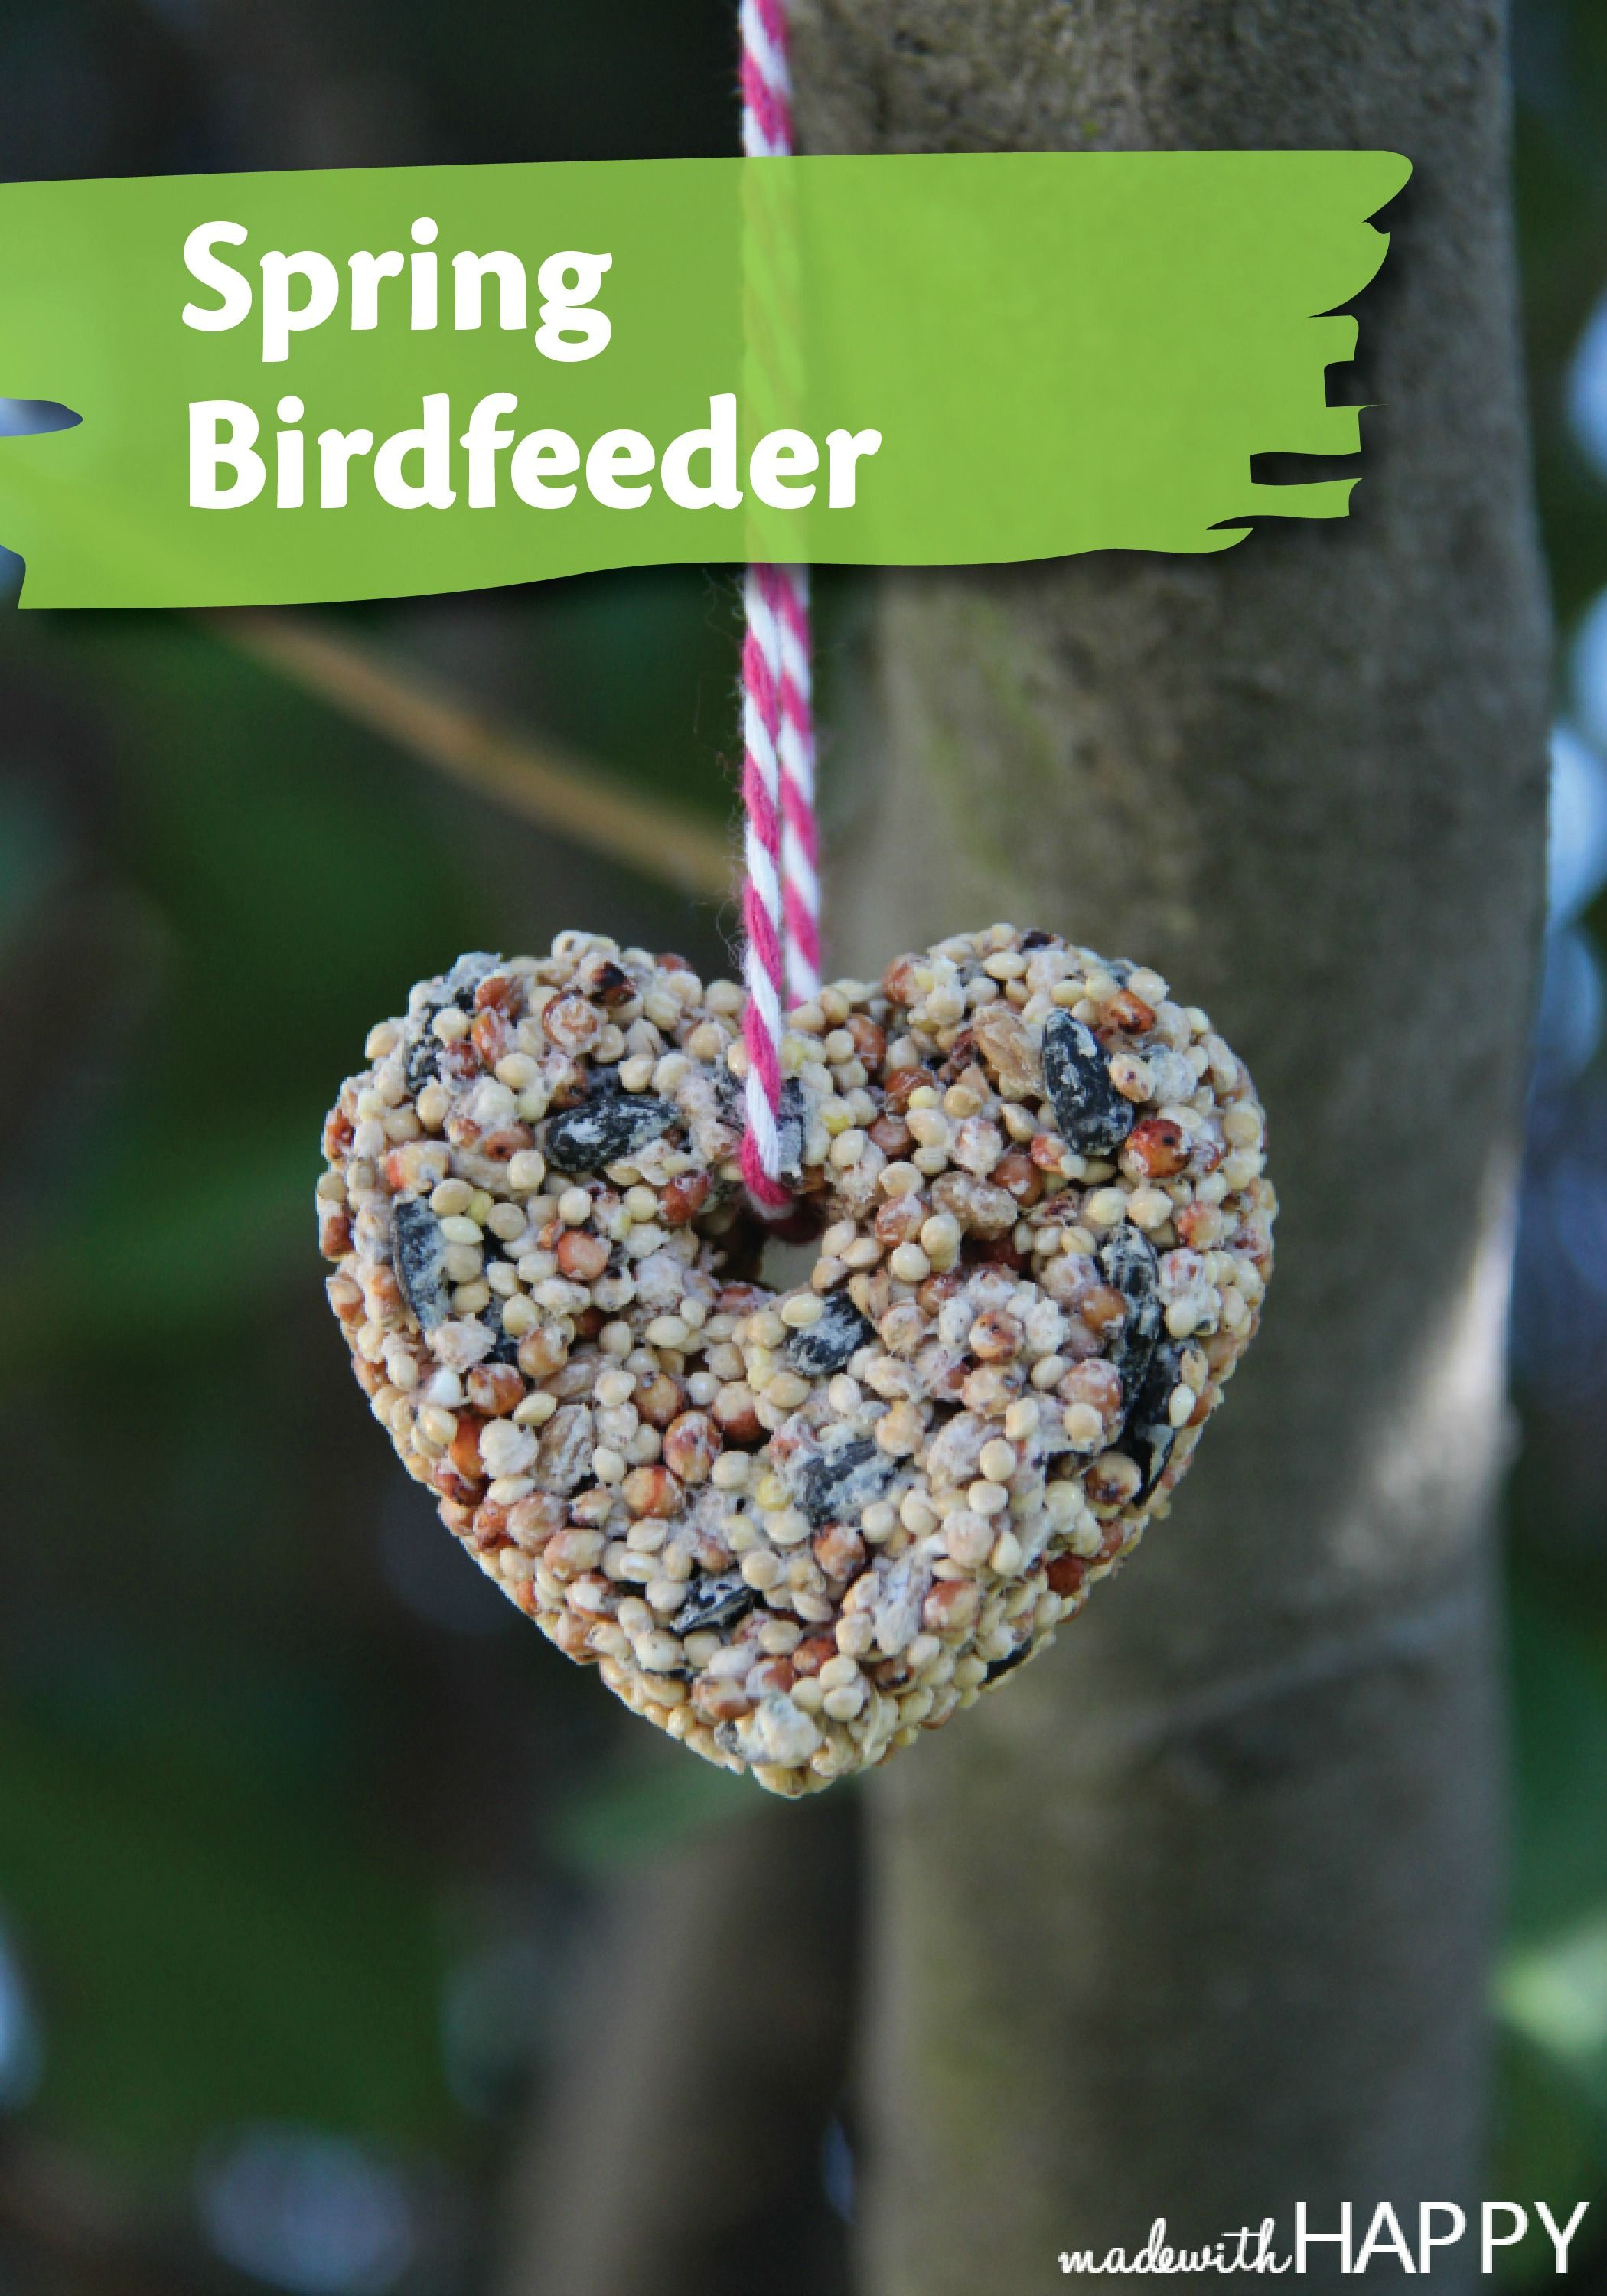 This adorable hanging bird feeder is a great spring craft to share with your kids!